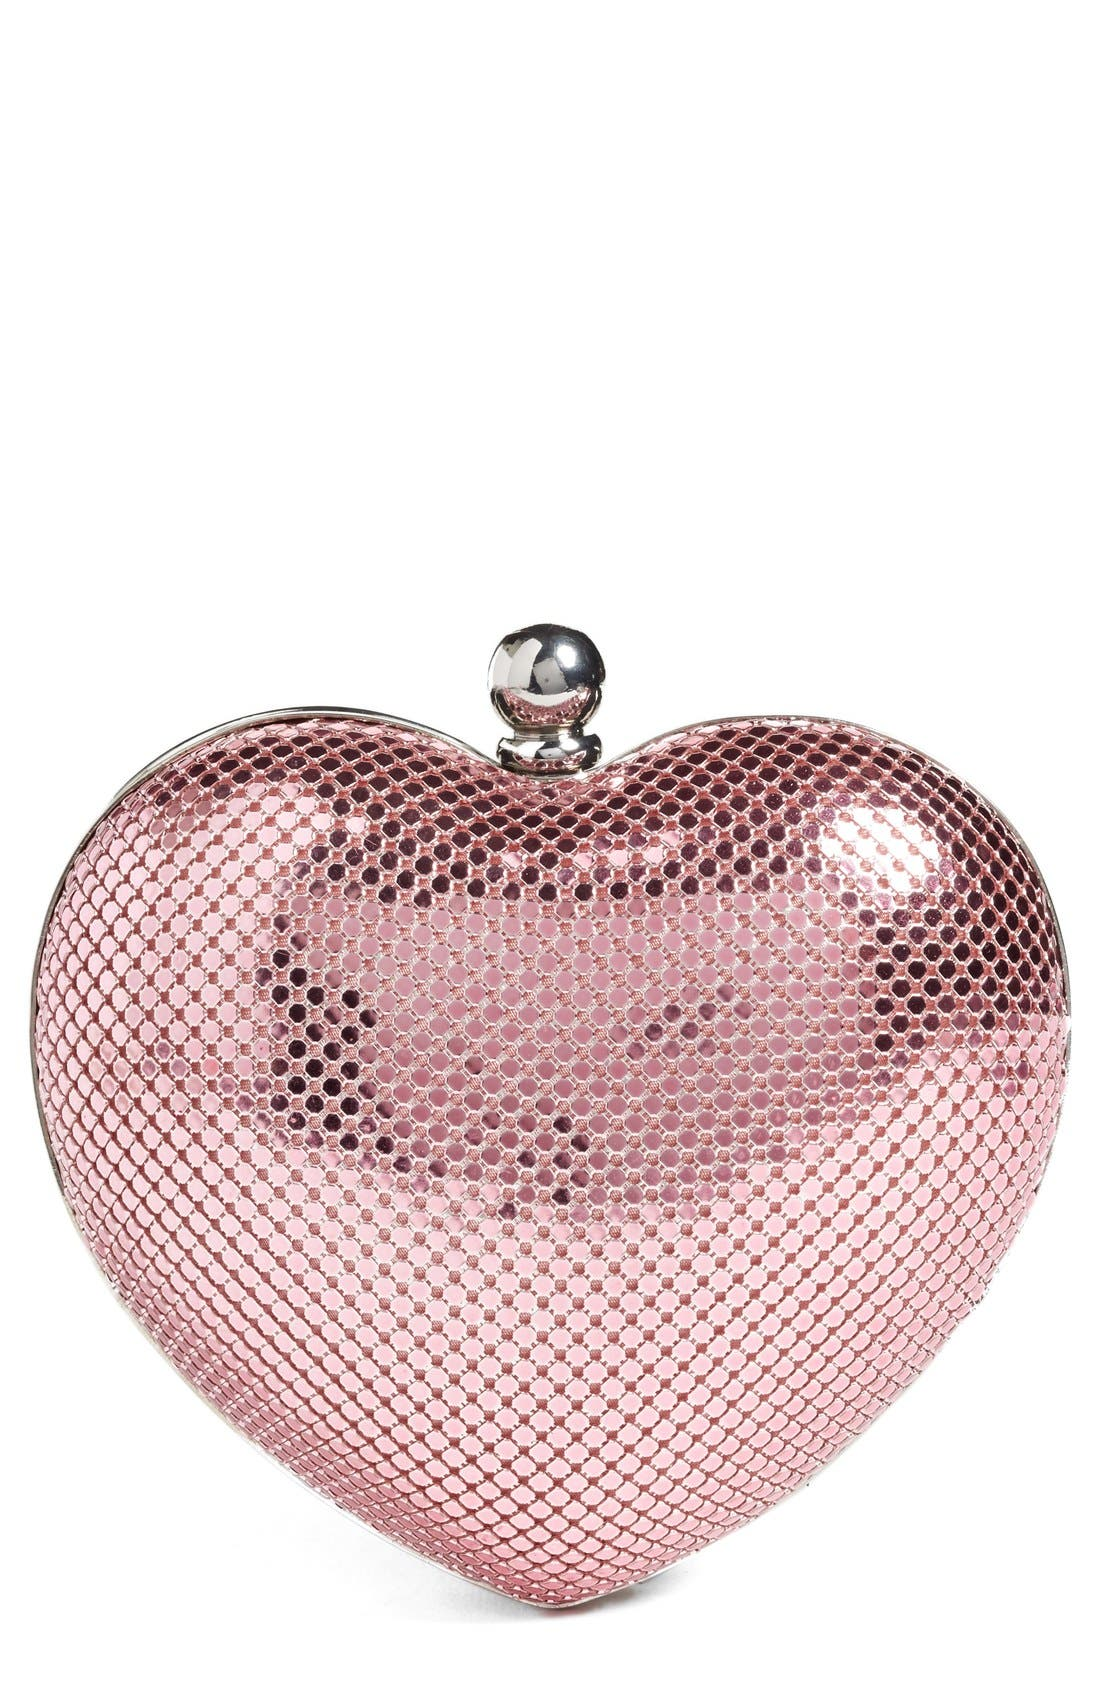 WHITING & DAVIS 'Charity Heart' Minaudière